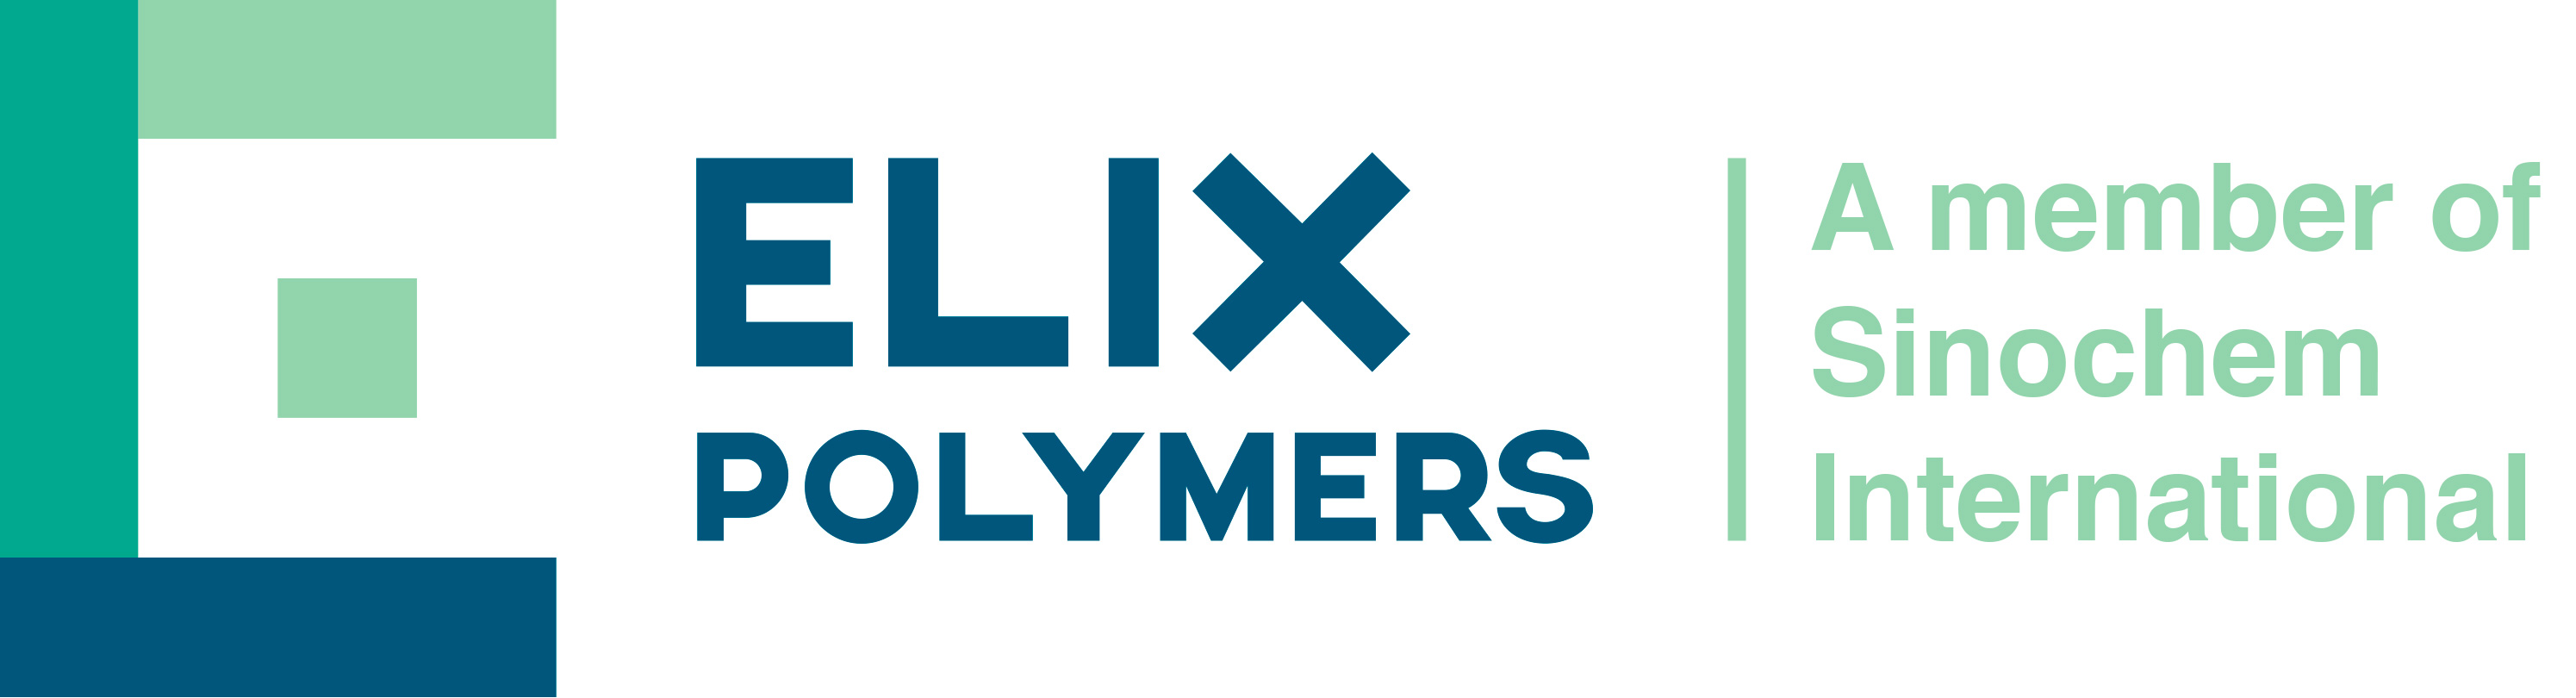 filial Sun European Partners, LLP completa venta inversión ELIX Polymers Sinochem International